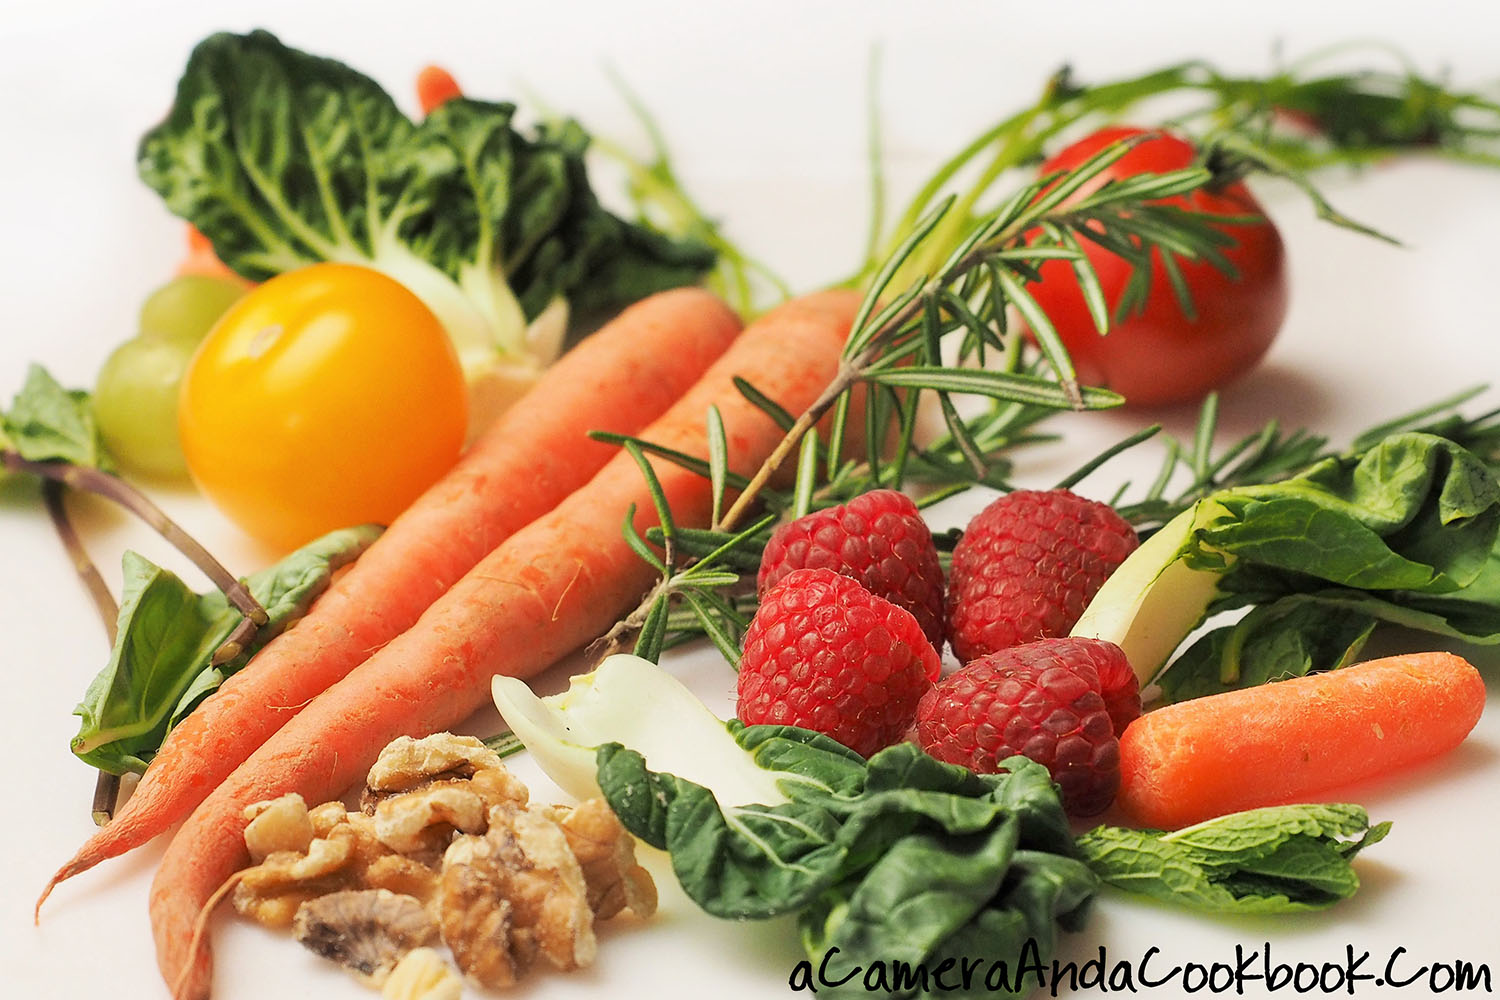 3Healthy Eating Tips To Get You Started